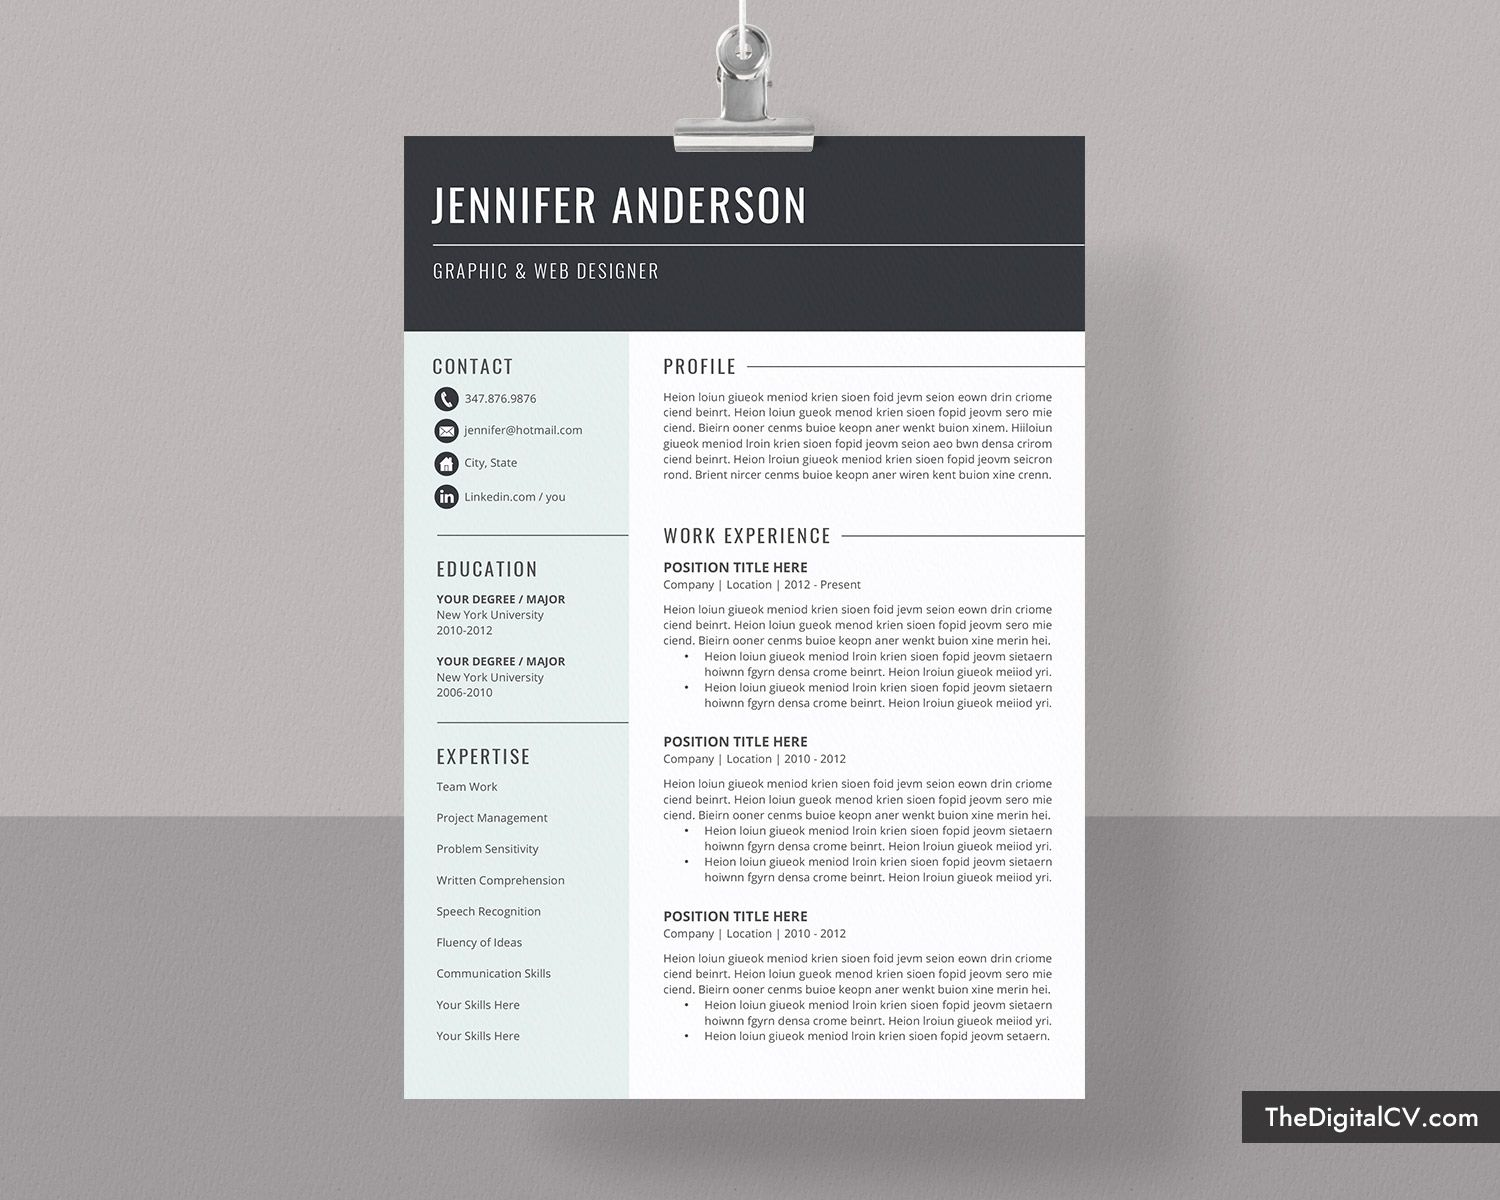 basic and simple resume template cv cover letter microsoft wor word free job examples Resume Job Resume Examples 2021